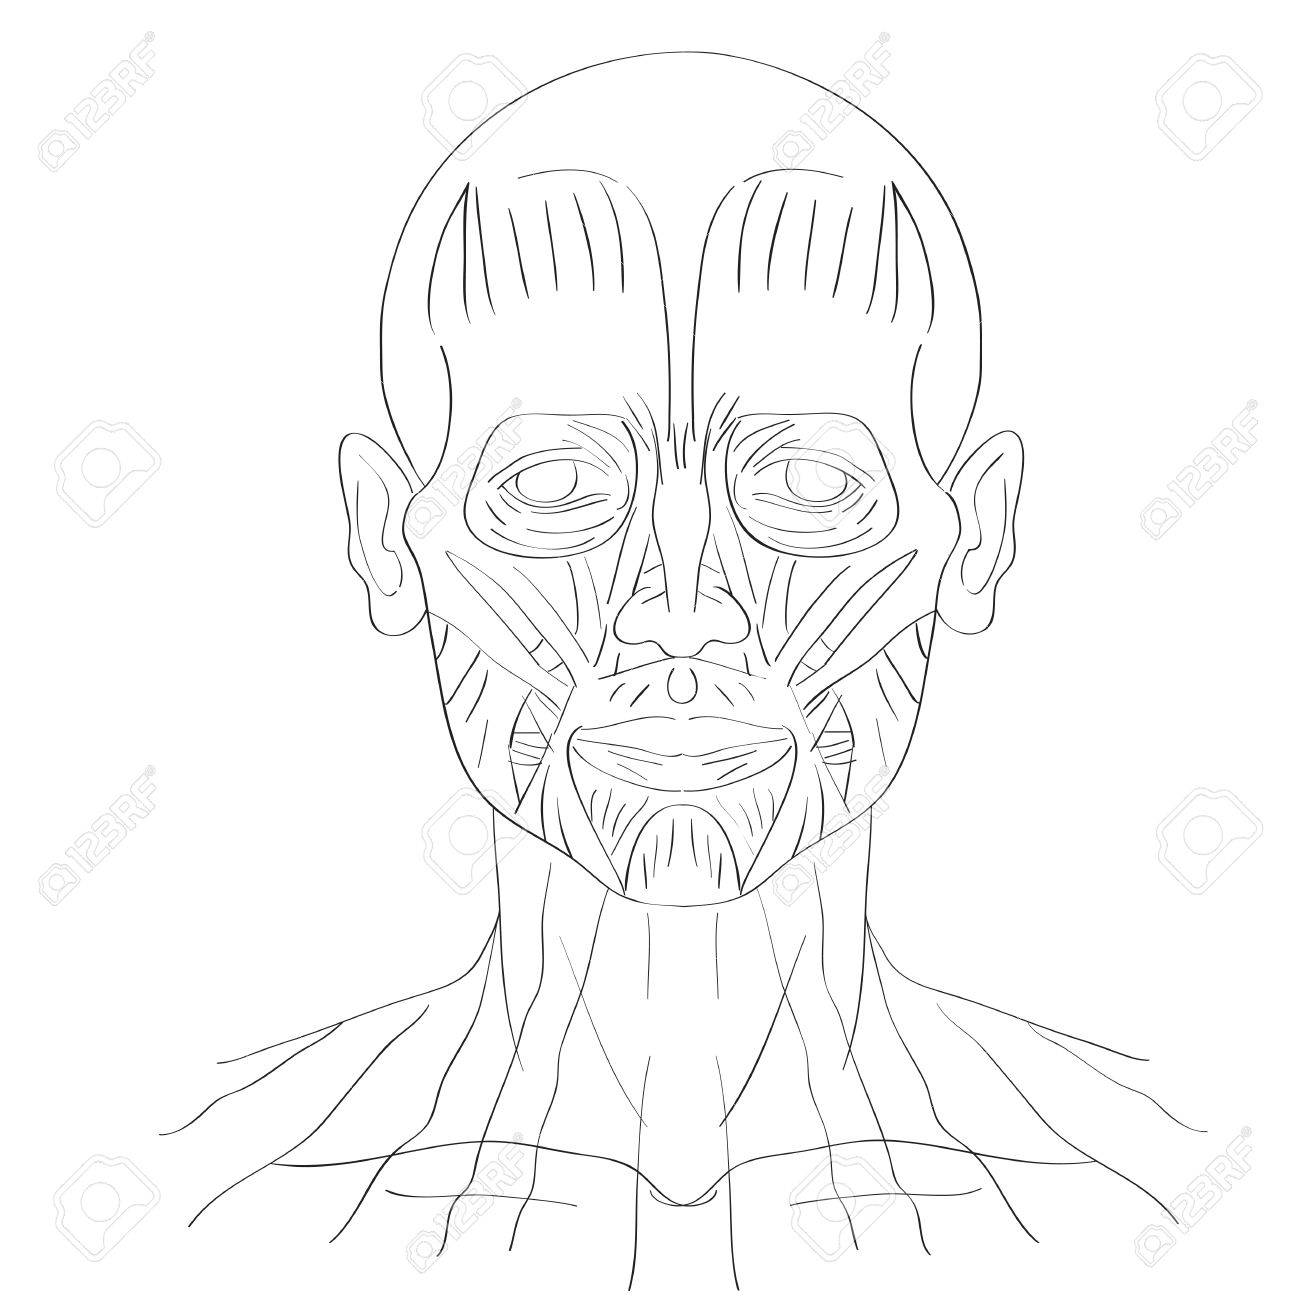 1300x1300 Illustration Of The Face Muscles Isolated On White, Artistic